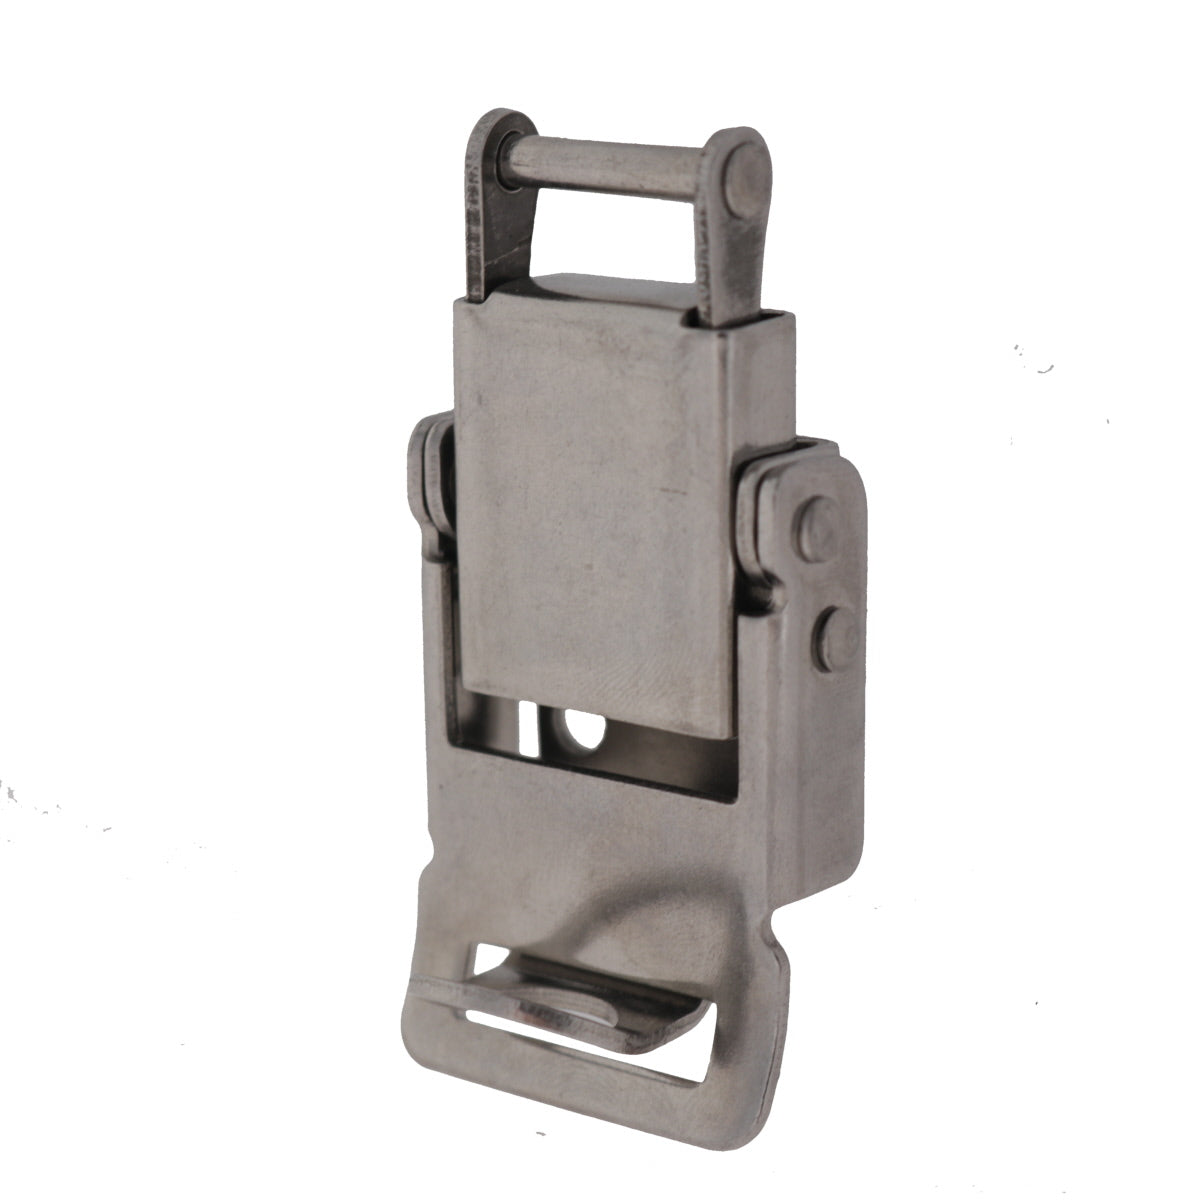 Pad lockable Compression Spring Drawlatch with upswept Lever, 3/4 view